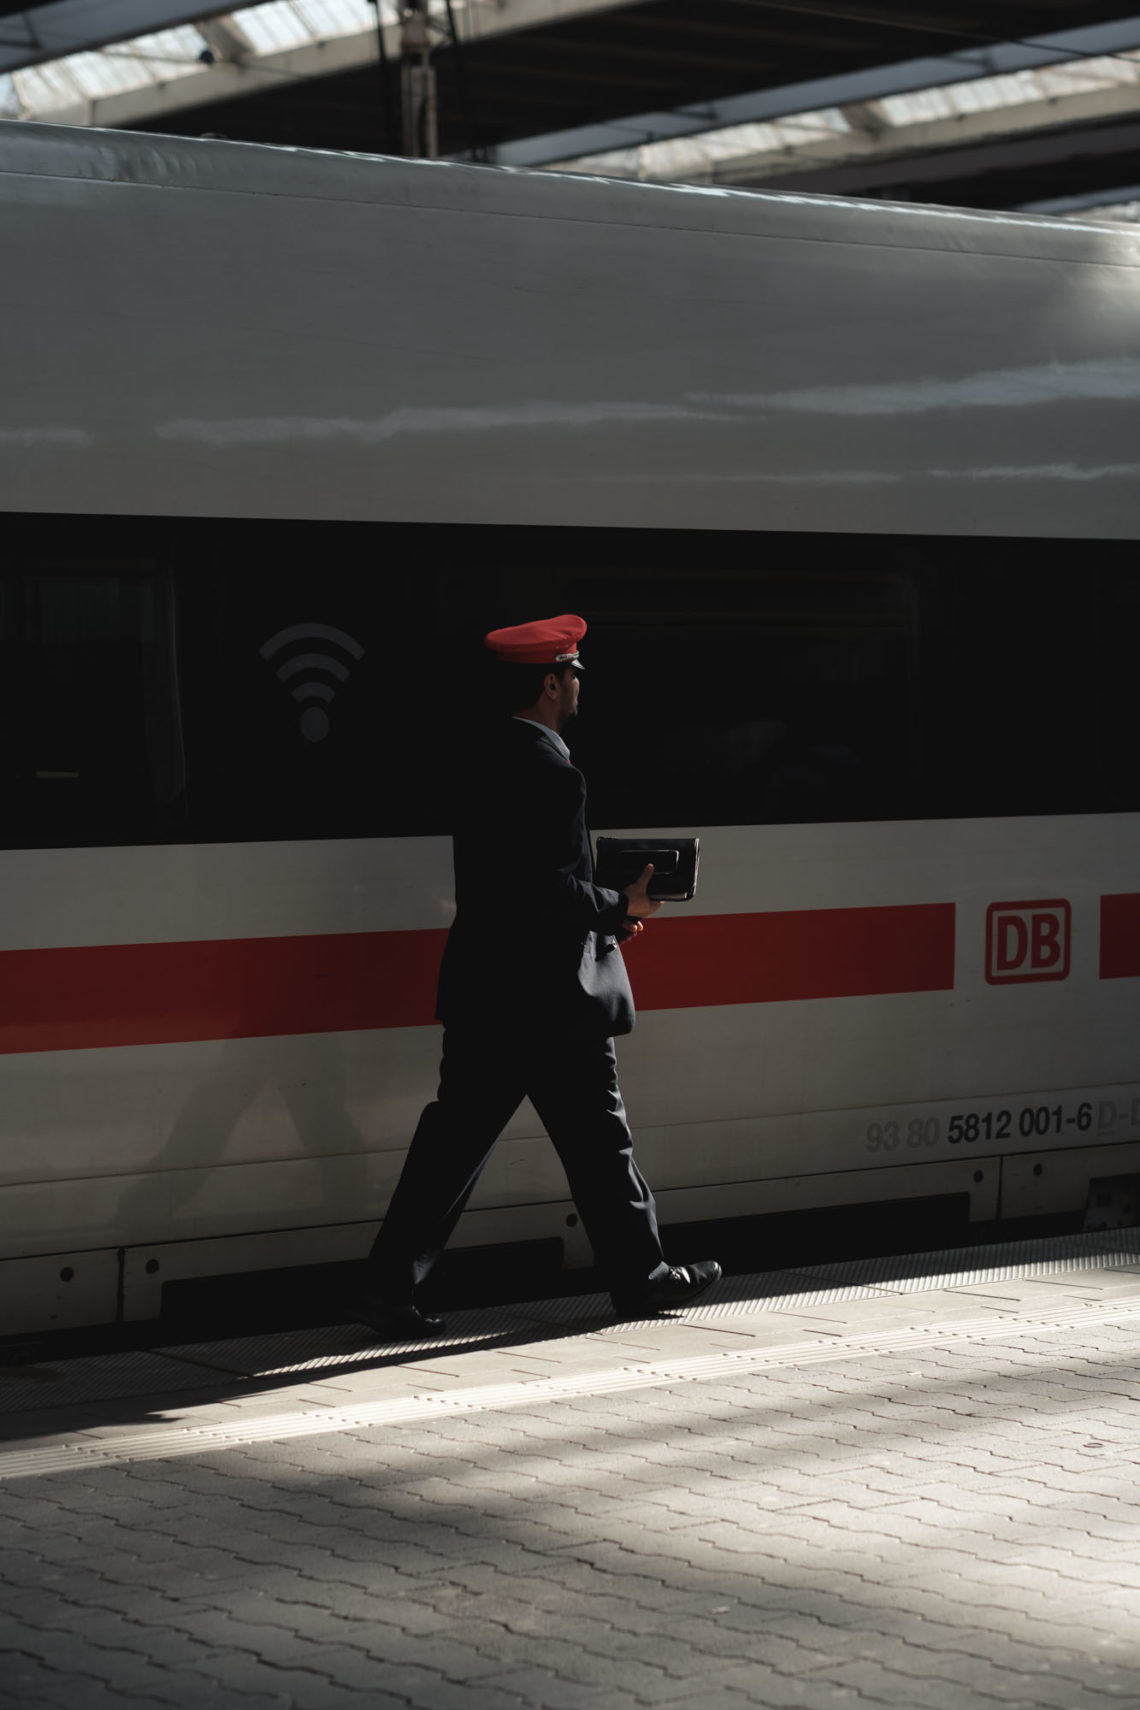 Deutsche Bahn Conductor - Munich, Germany - Fuji X-T3